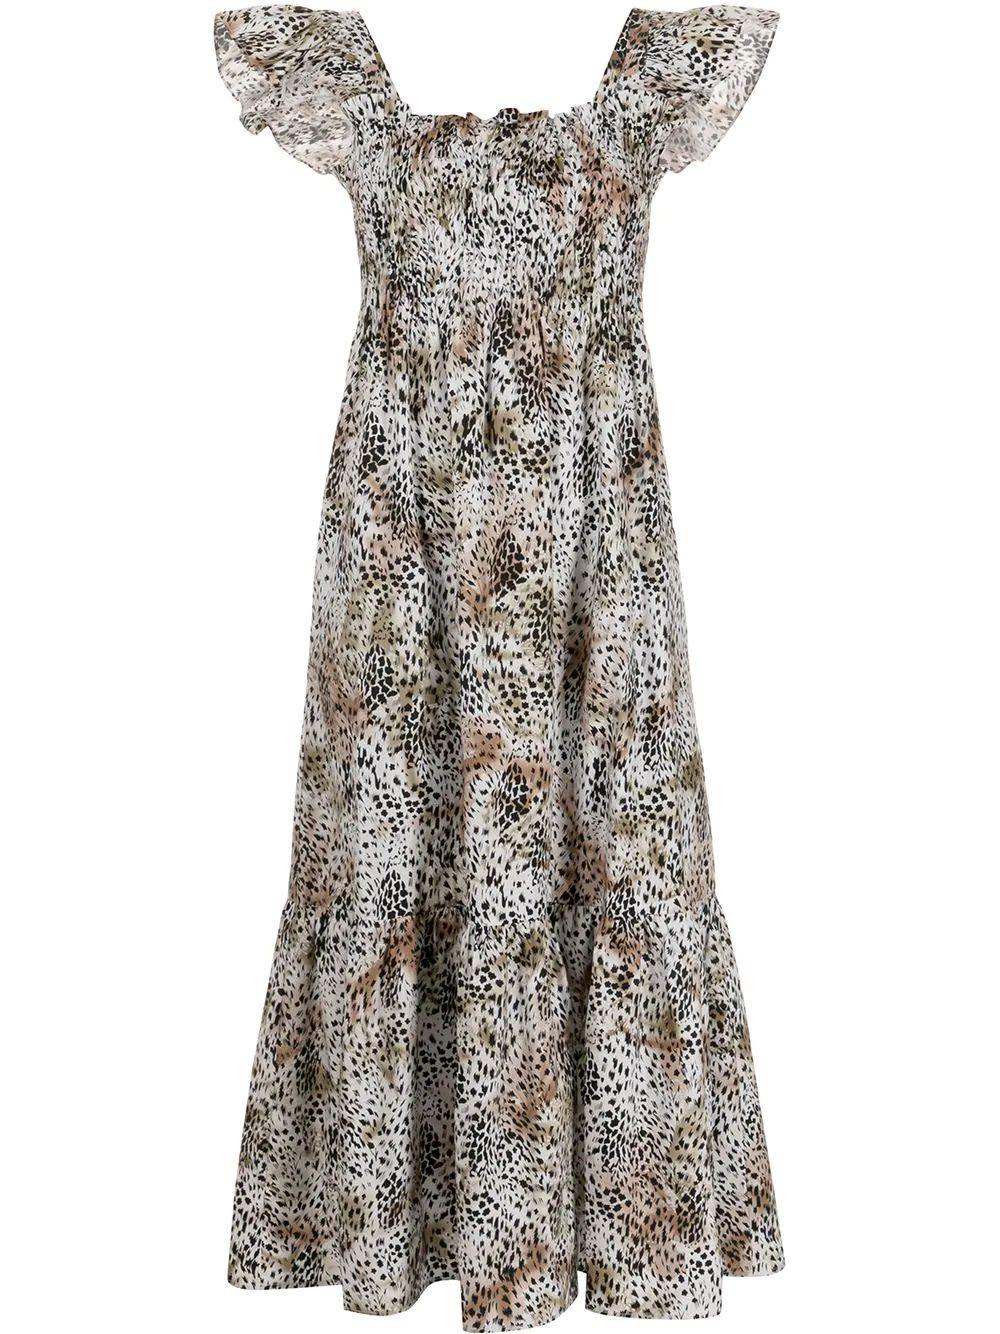 Lana Animal Print Midi Dress